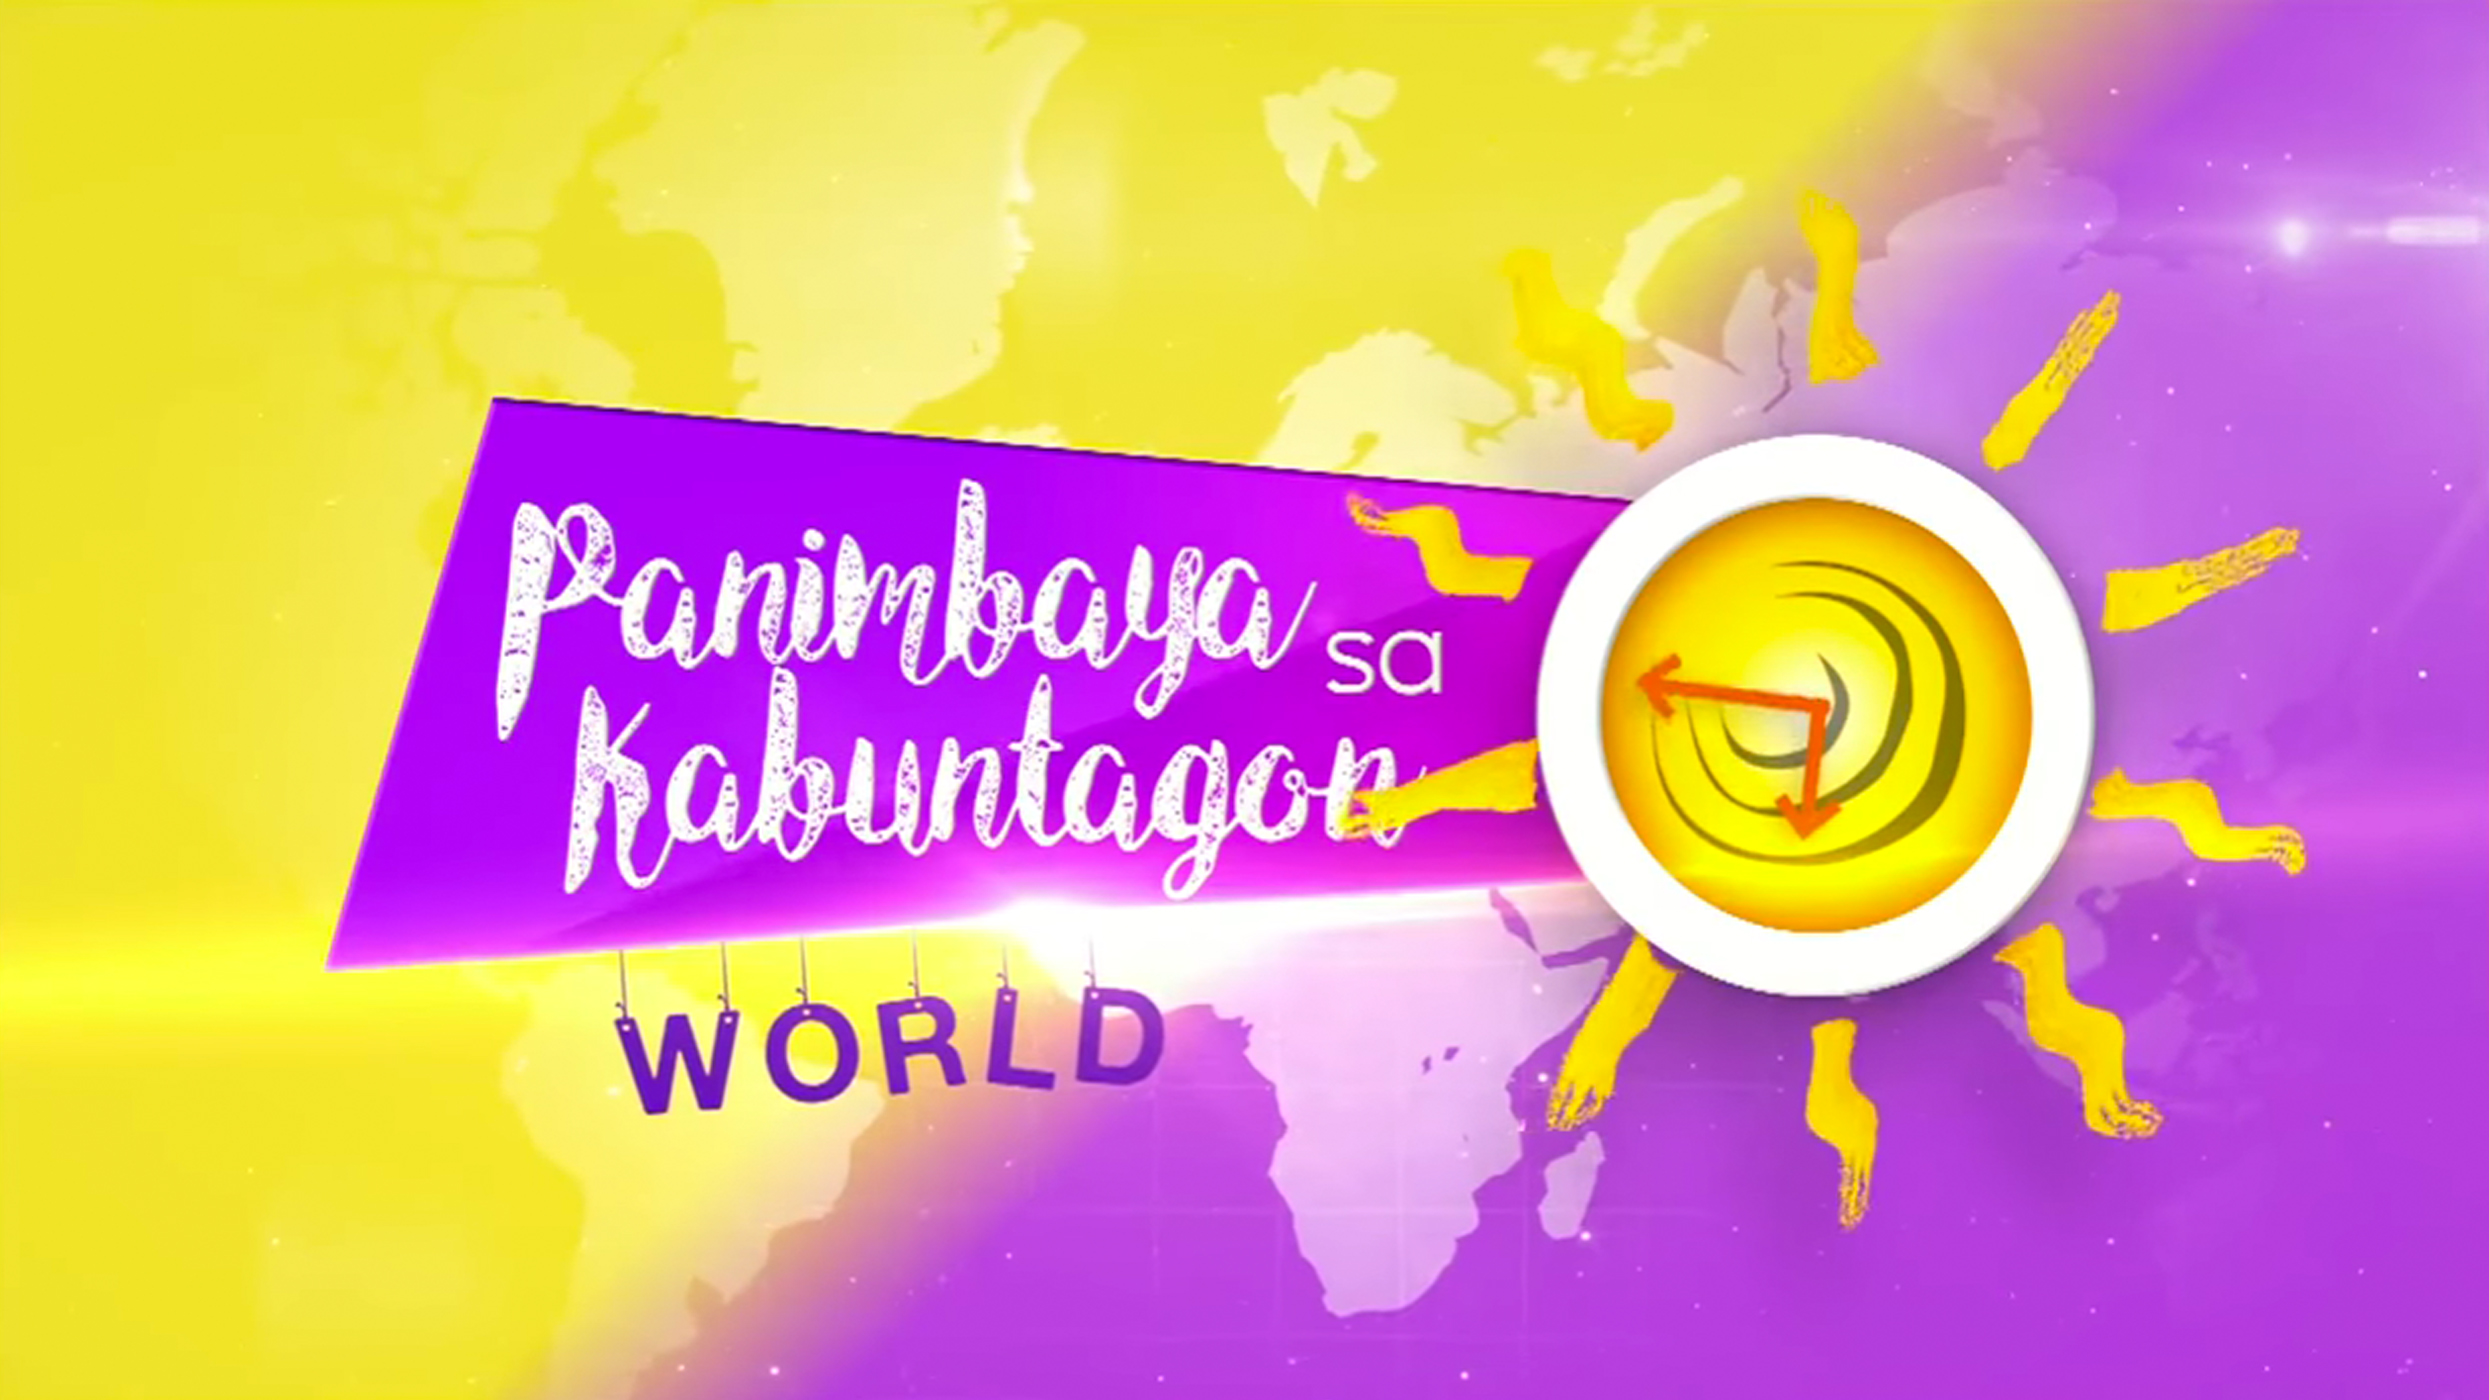 Panimbaya sa Kabuntagon World